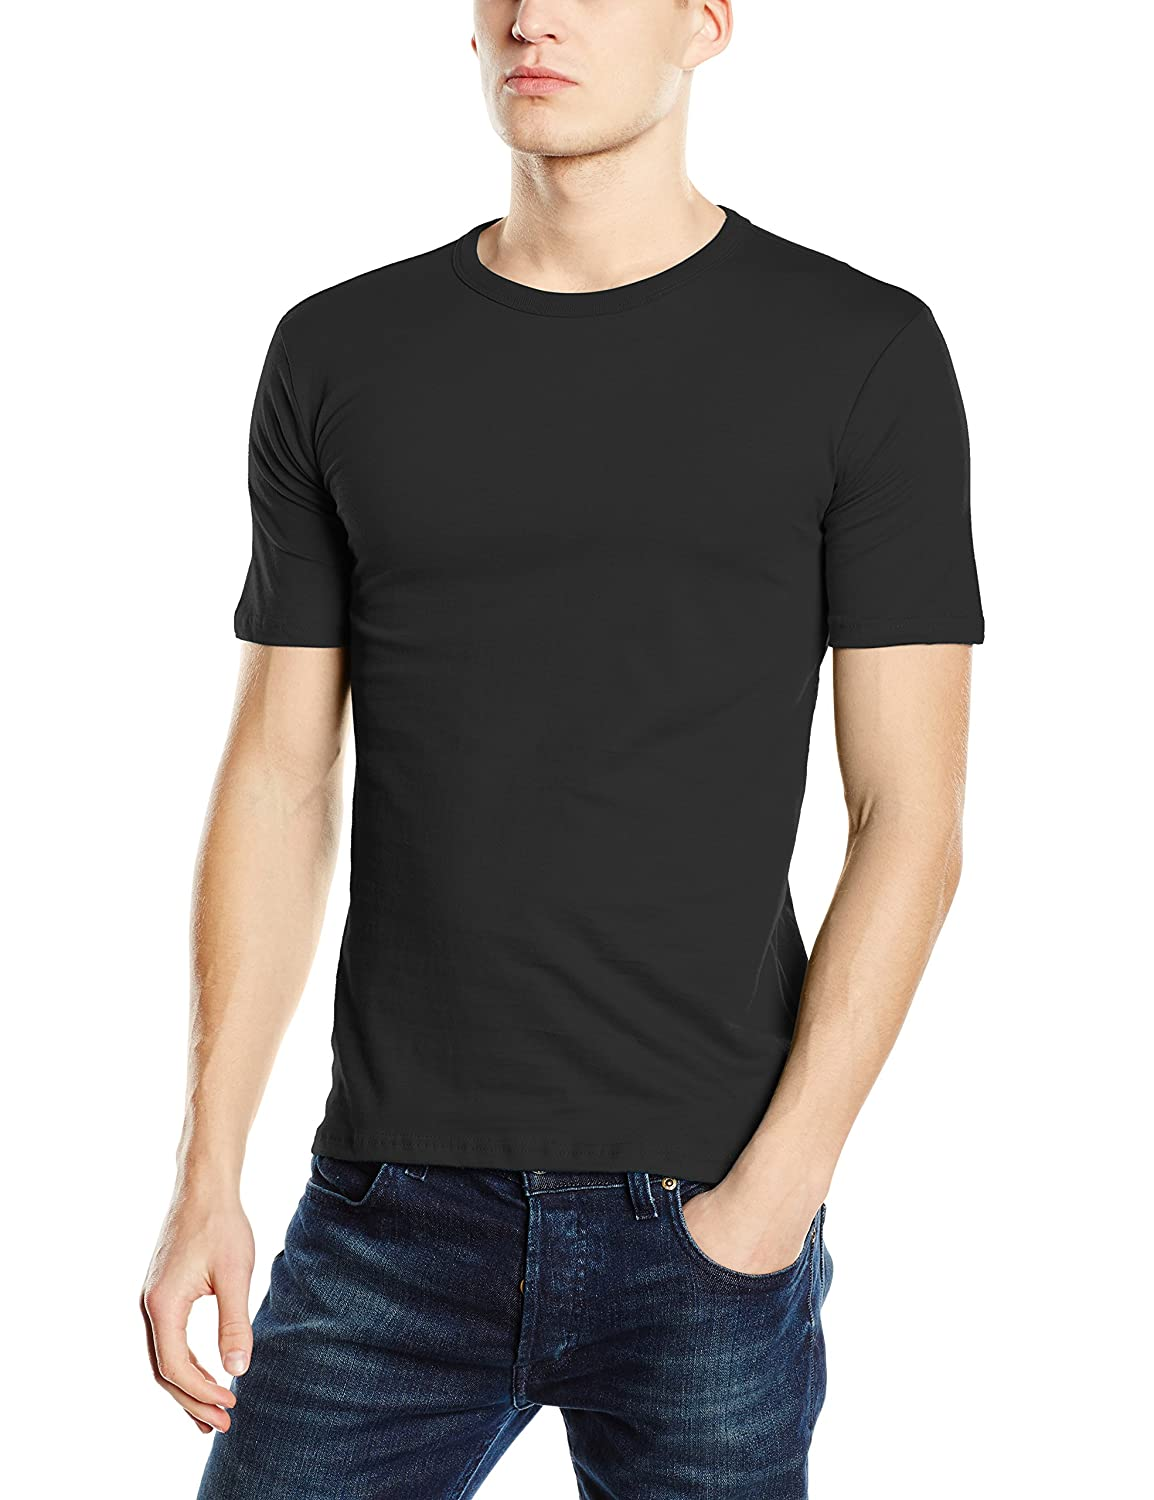 Mens Clive V-Neck/ST9610 Premium Slim Fit Classic Short Sleeve T-Shirt Stedman Apparel With Credit Card Free Shipping Sale Fast Delivery Fashionable Cheap Online Store Cheap Online Pictures For Sale VrPsAhHmY